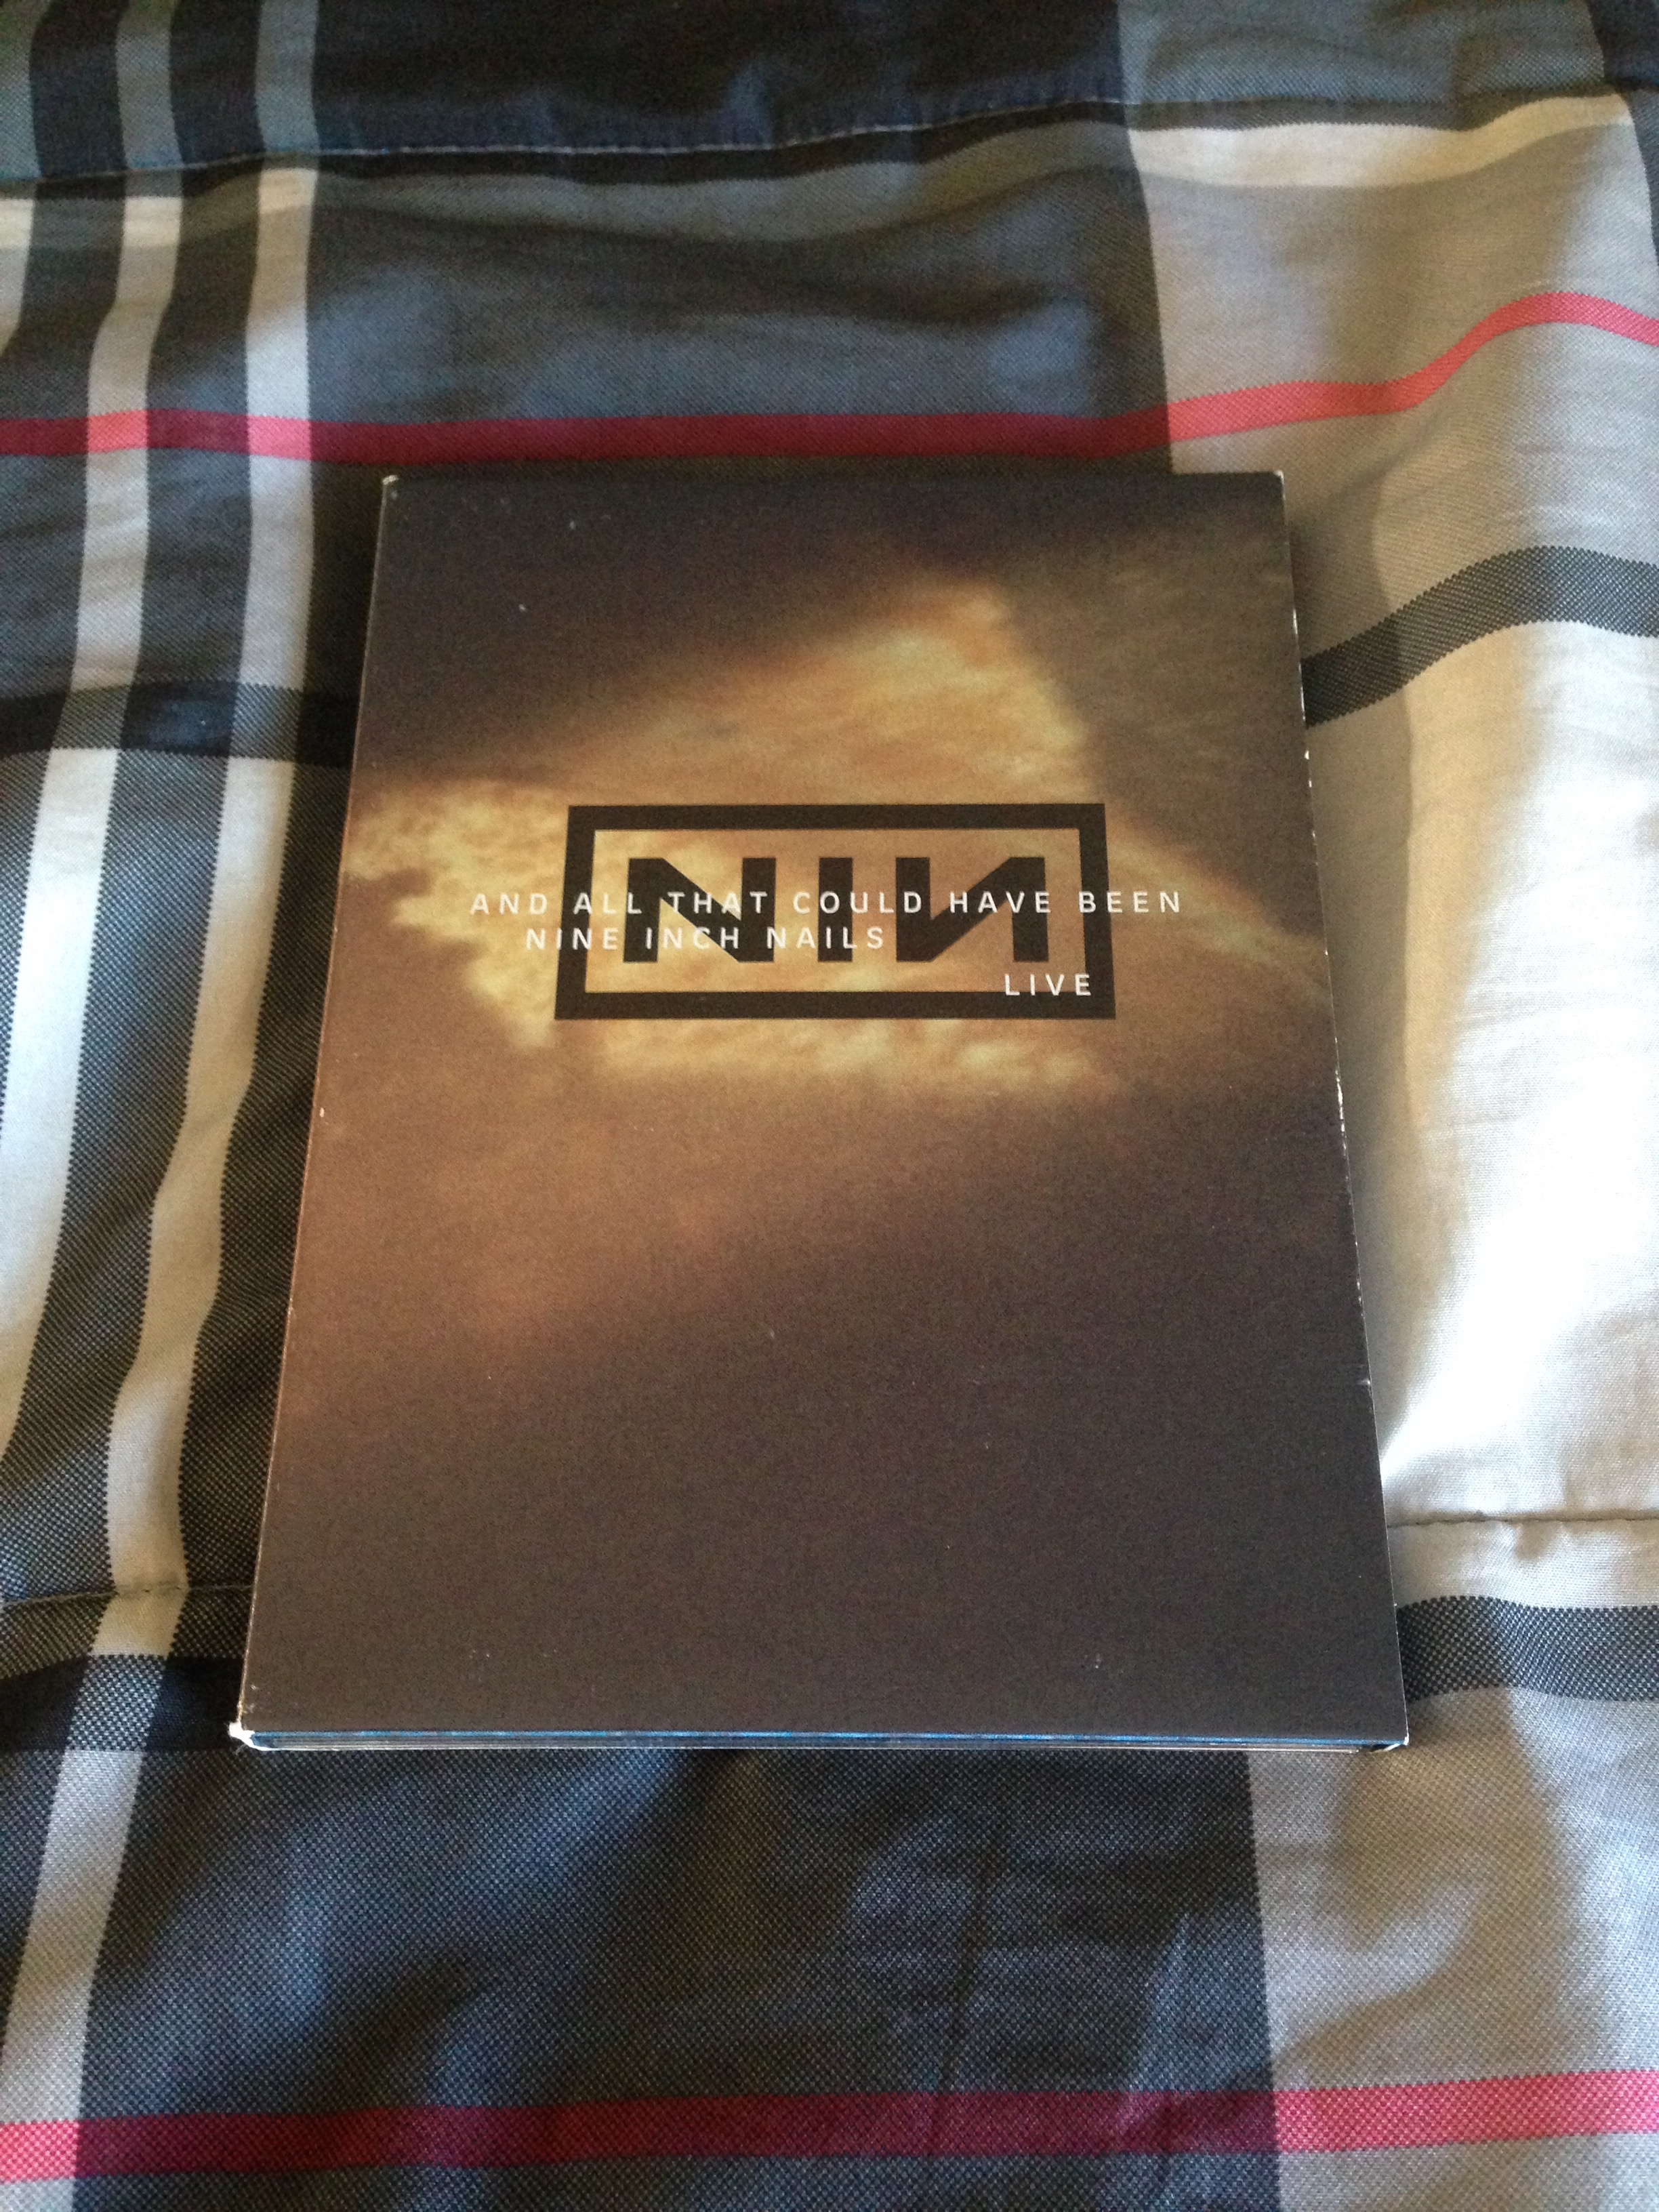 DVD Special – And All That Could Have Been, by Nine Inch Nails ...